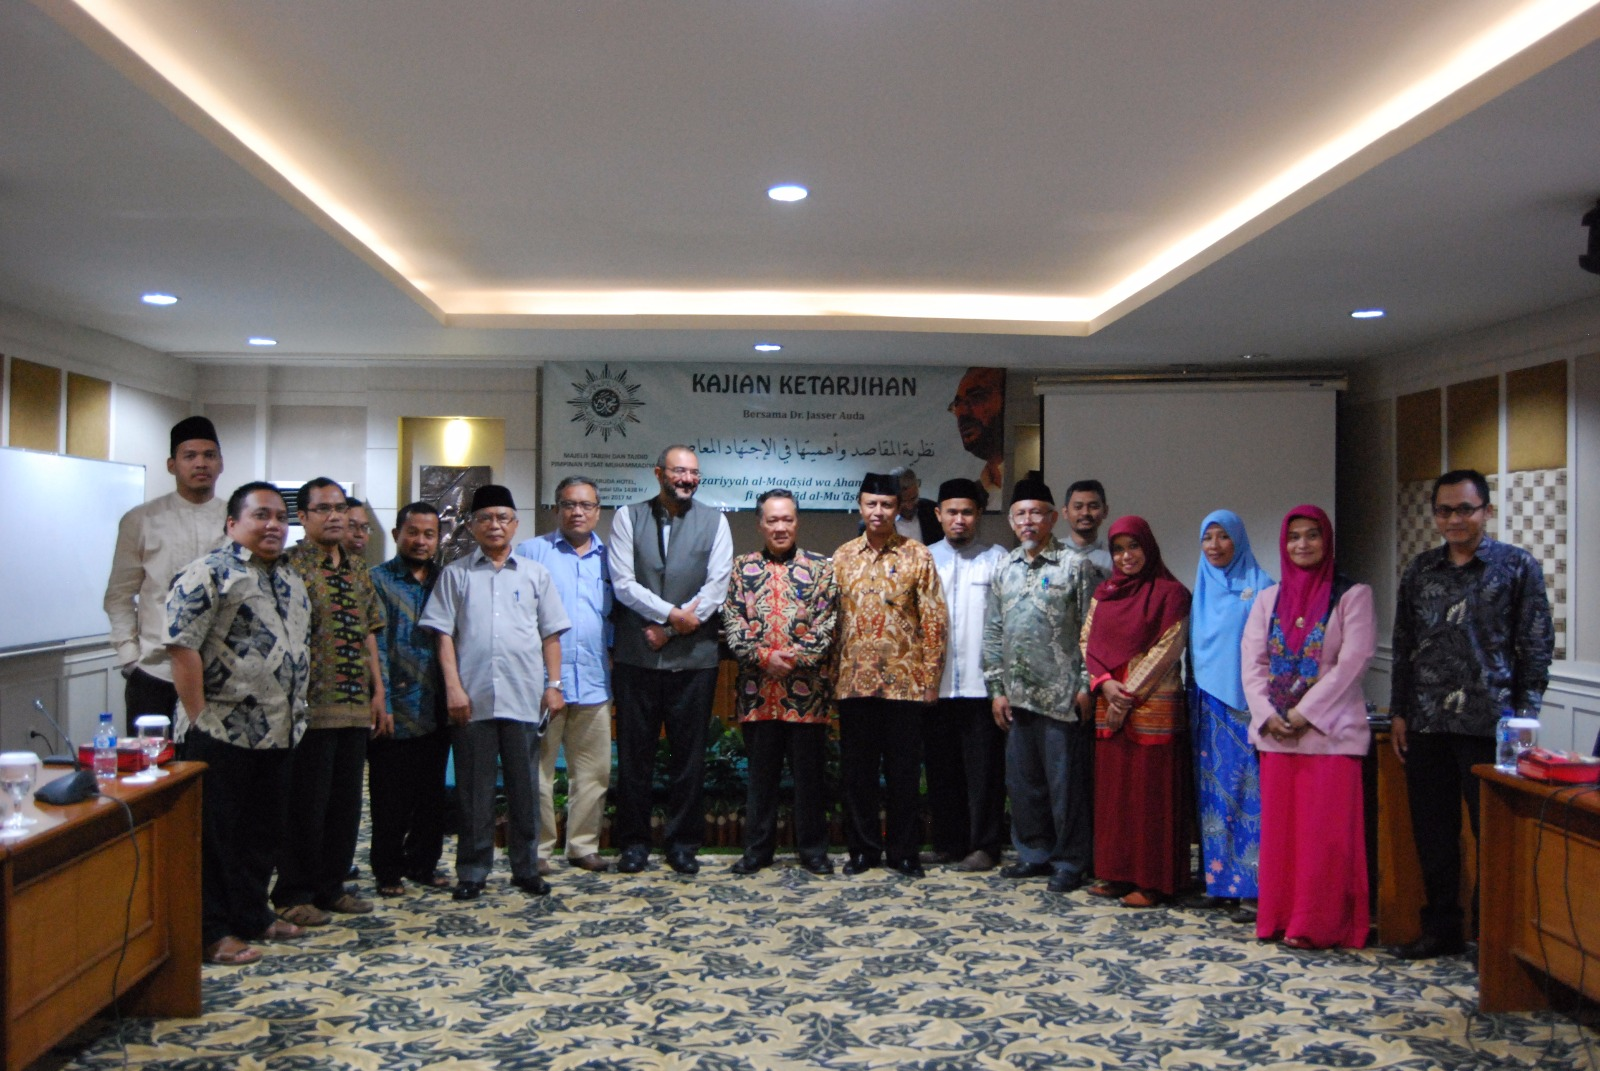 Photo of Jasser Auda on Indonesian Islam and Muhammadiyah